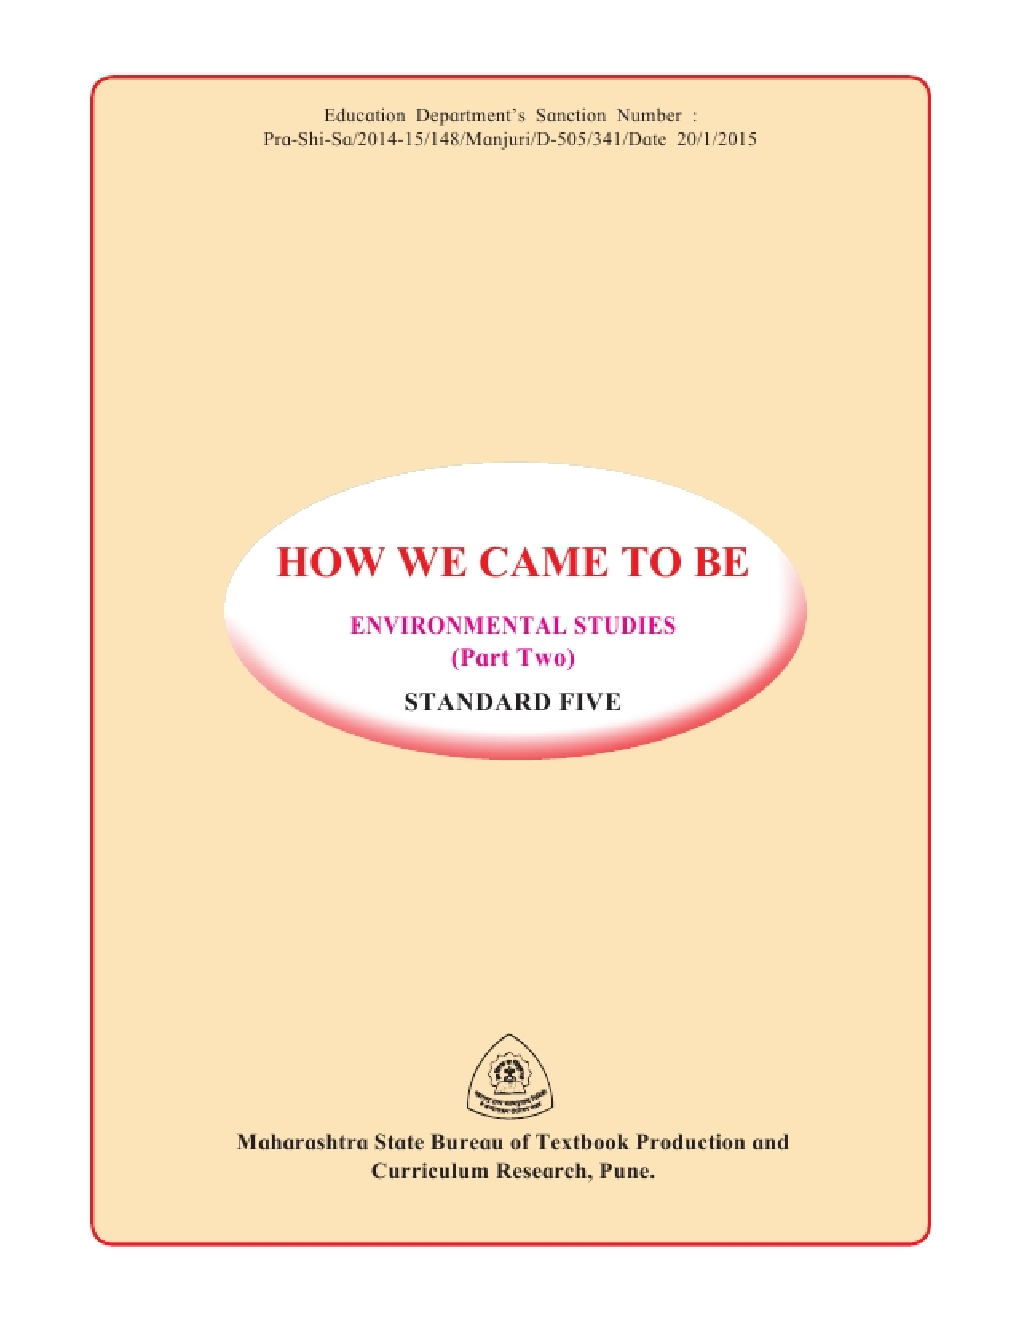 Maharashtra School Textbook How We Come To Be (Environmental Studies Part-2) For Class-5 - Page 4